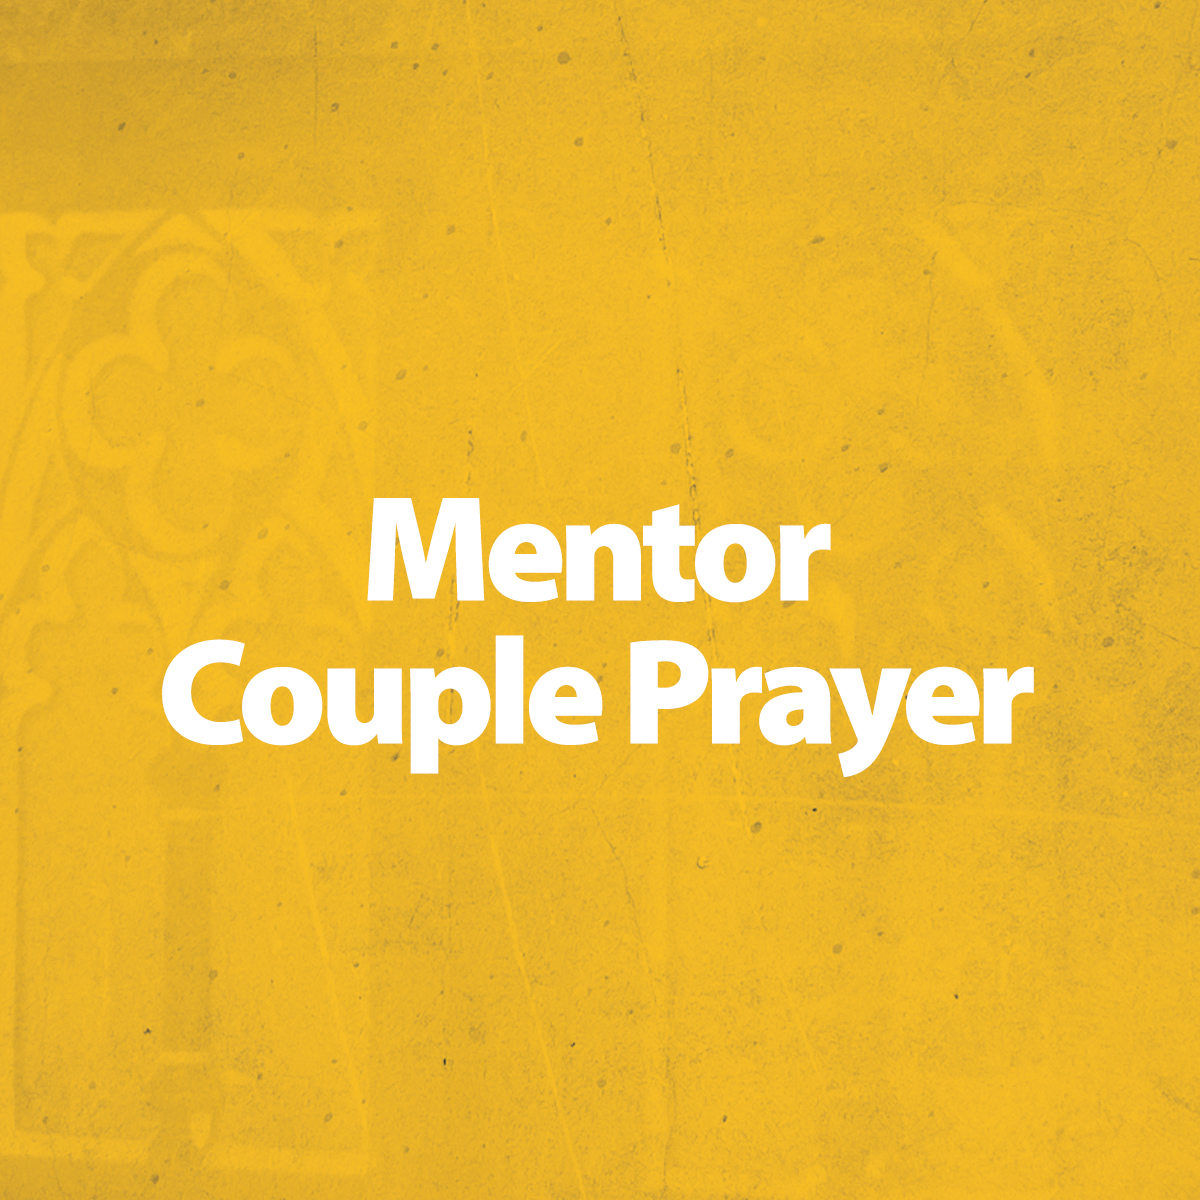 Mentor Couple Prayer